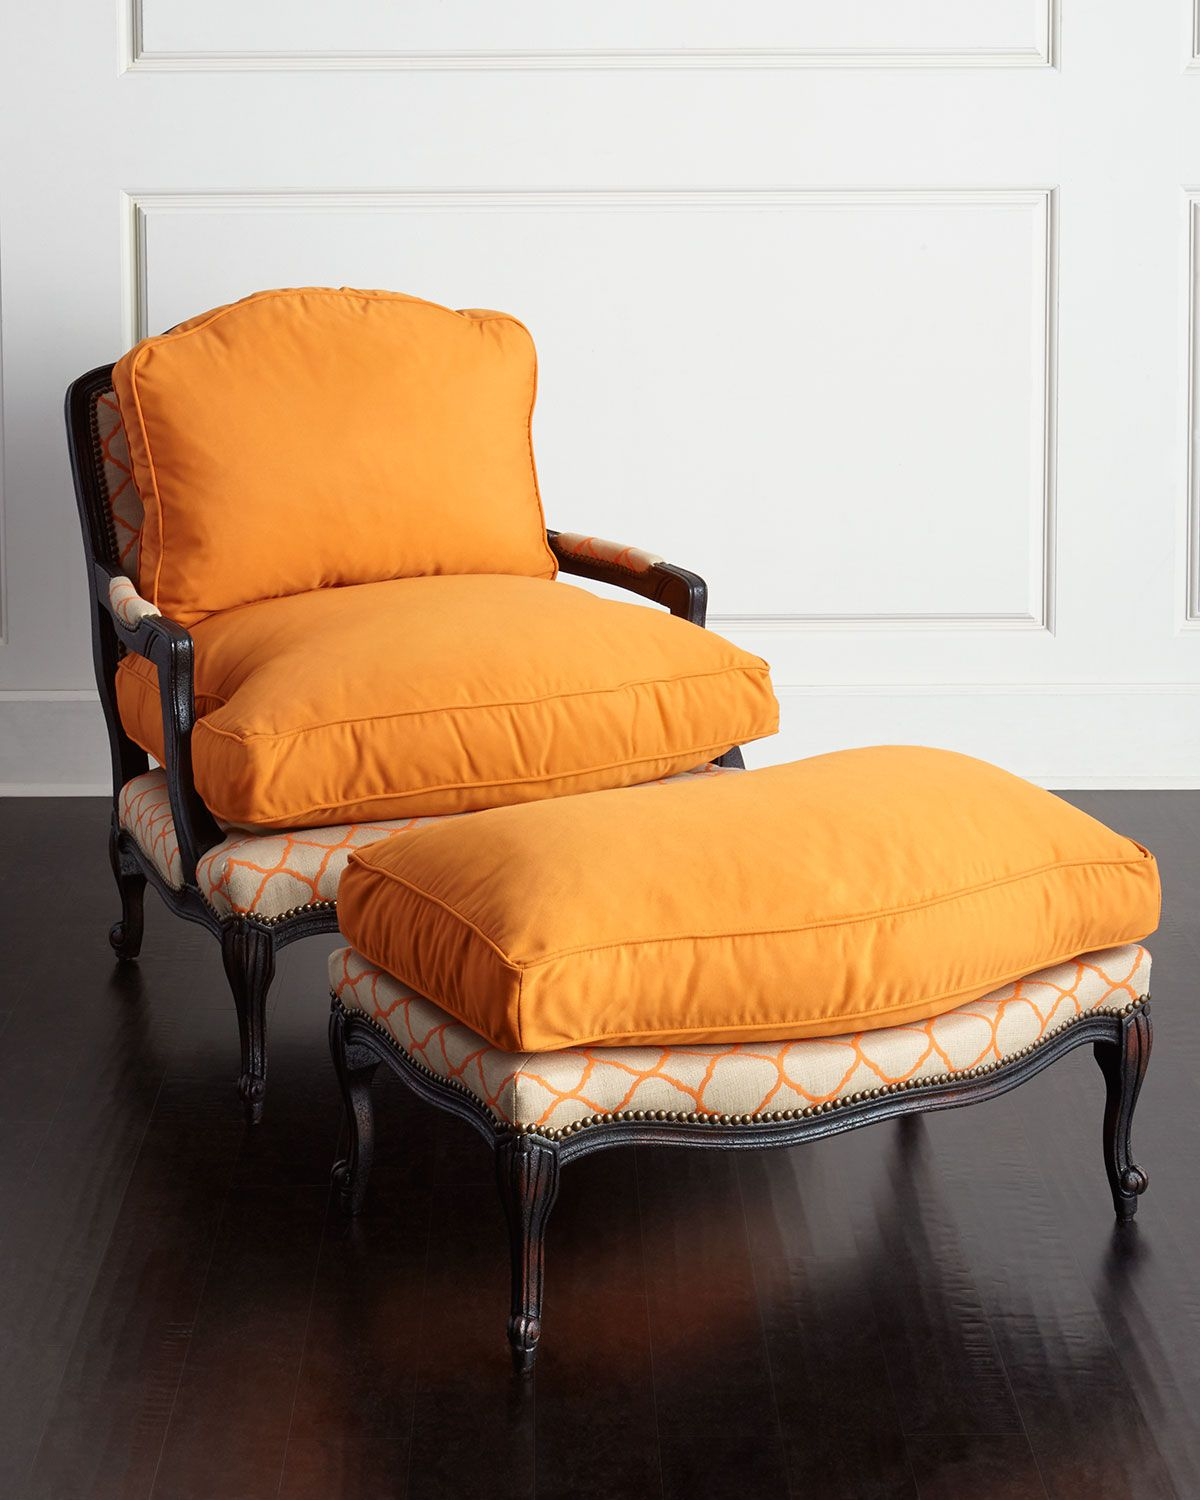 Bergere chair and ottoman - Old Hickory Tannery Clementine Bergere Chair Ottoman